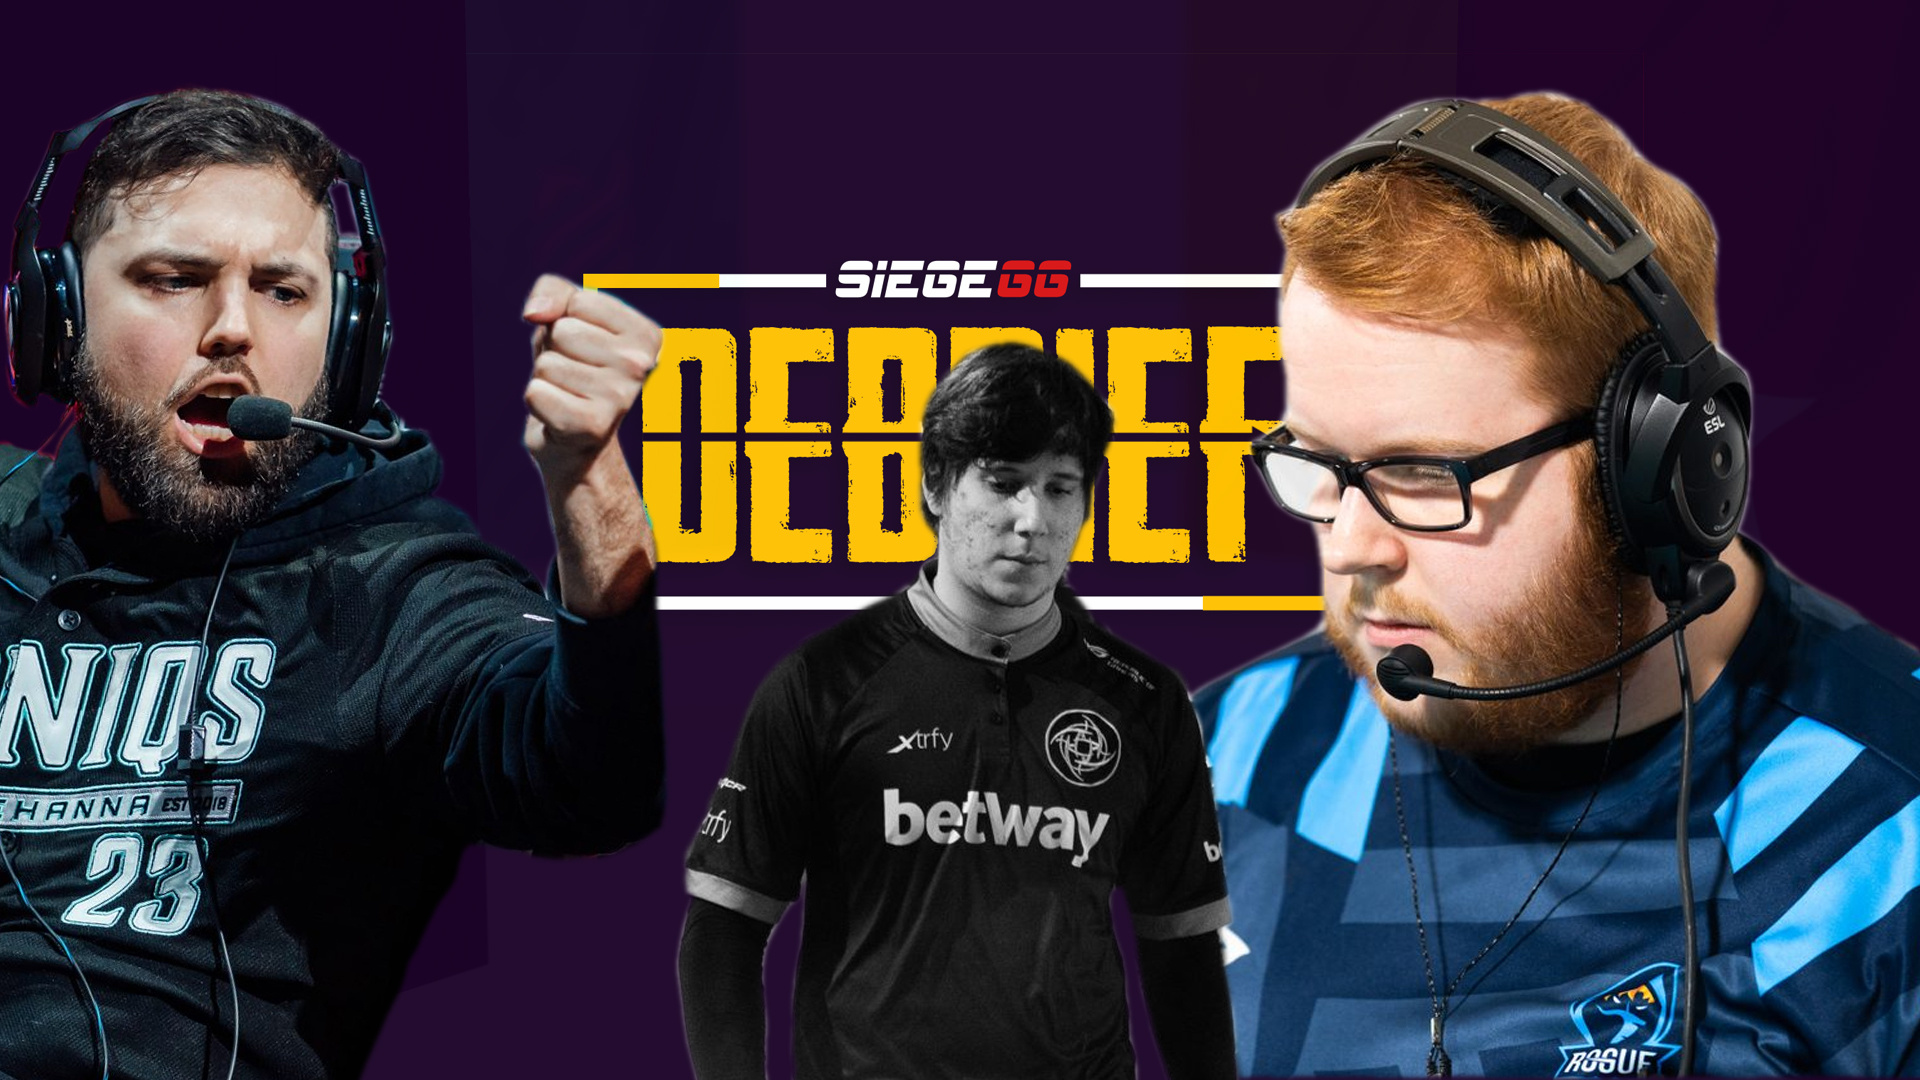 SiegeGG Debrief   Supr's Soniqs BLOW PAST Canadian's DZ! Rogue with the UPSET?!